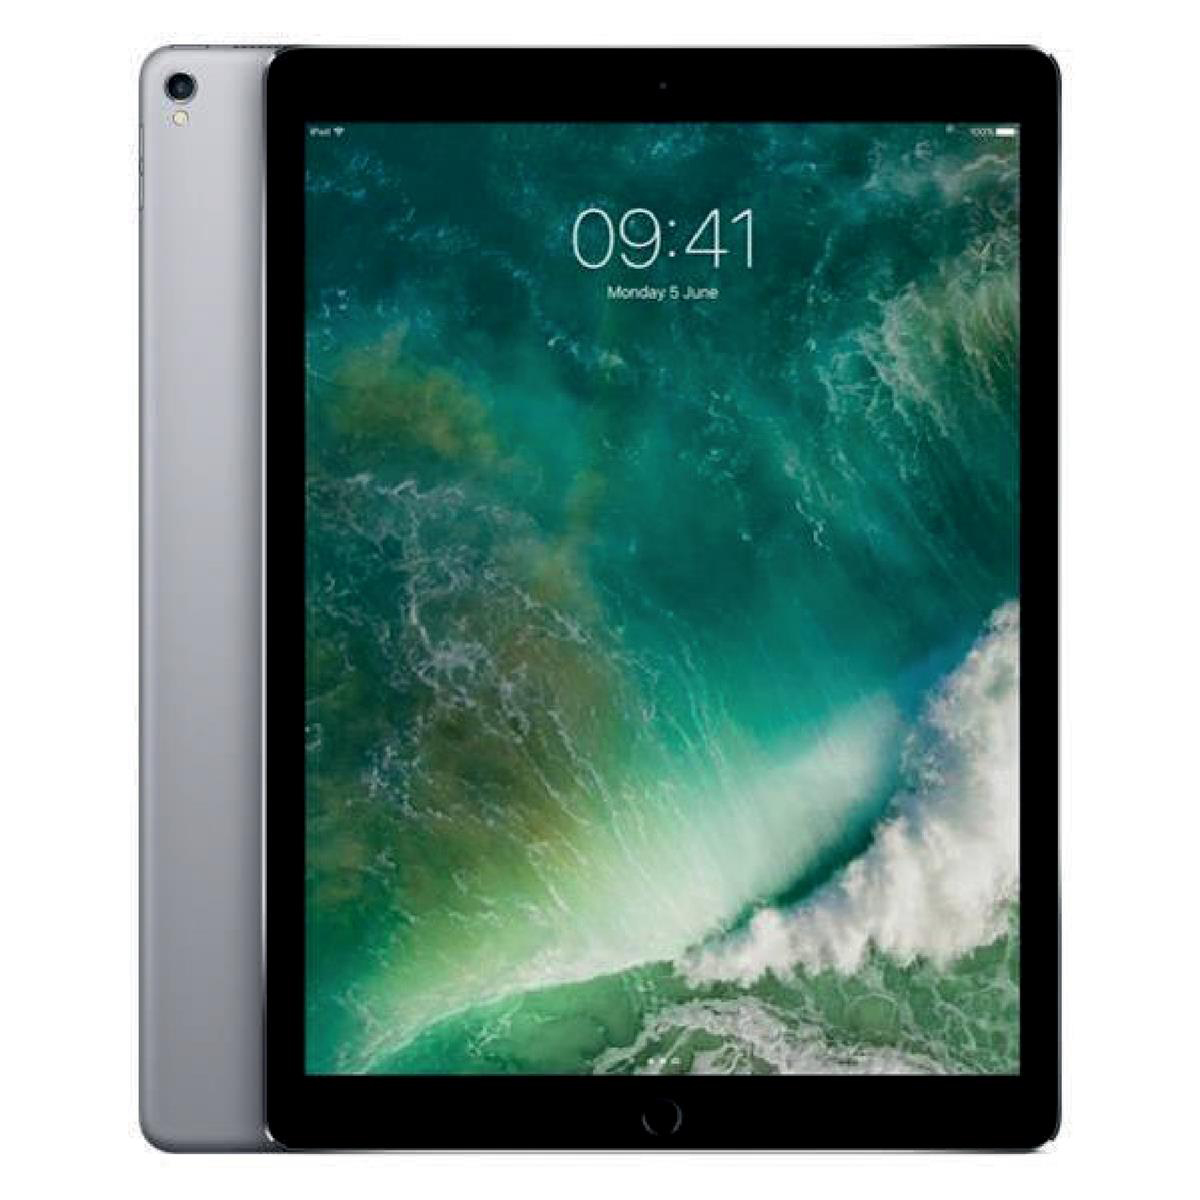 Apple iPad Pro A10X Processor Wi-Fi 64GB 12.9in Retina Display ID Finger Sensor Space Grey Ref MQDA2B/A